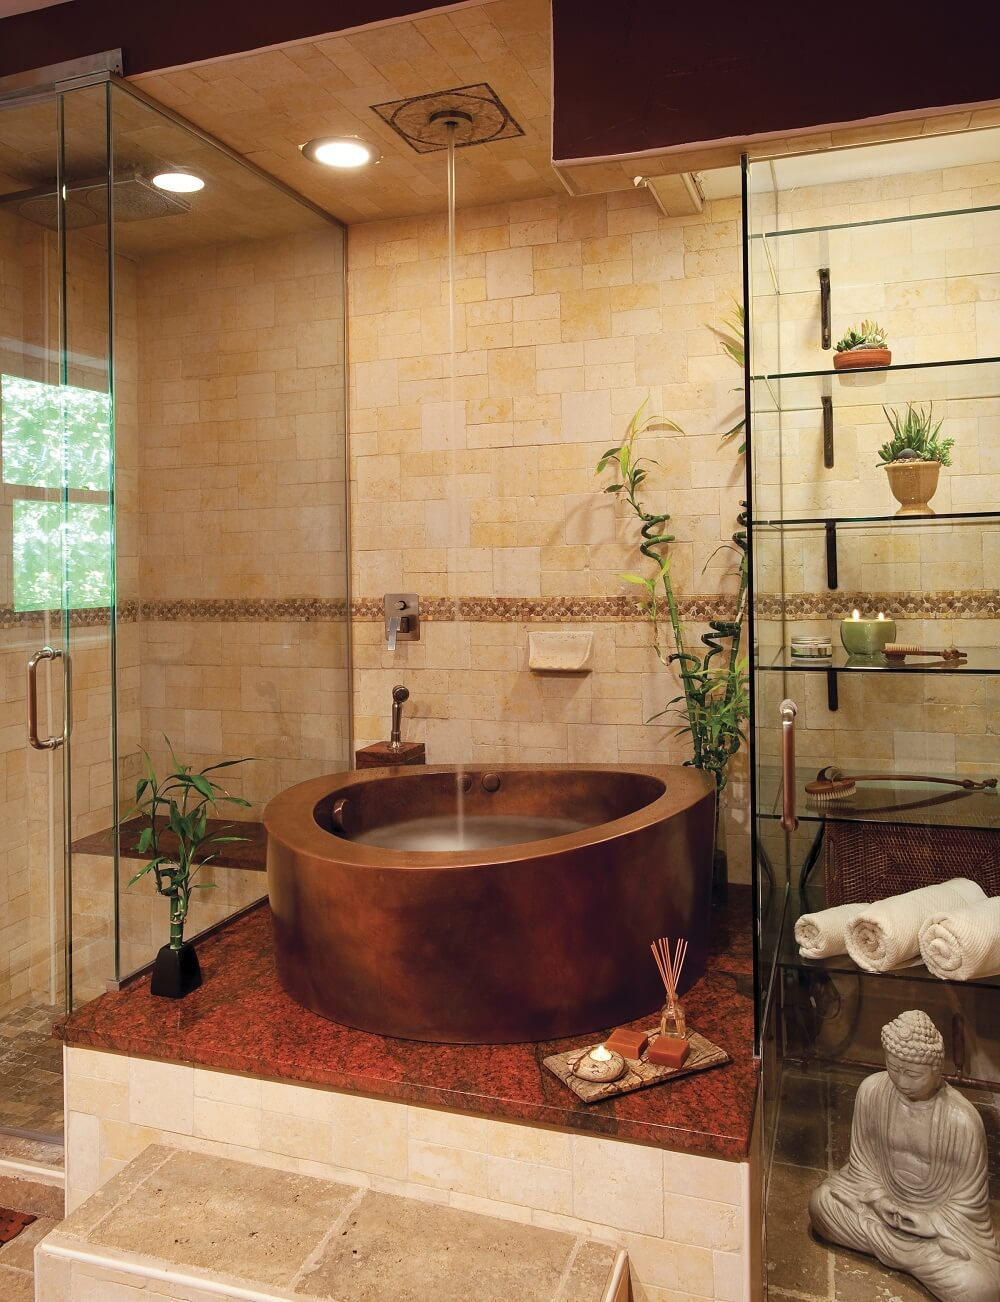 Outstanding Japanese Soaking Tubs Japanese Baths Outdoor Soaking Tub Beutiful Home Inspiration Truamahrainfo